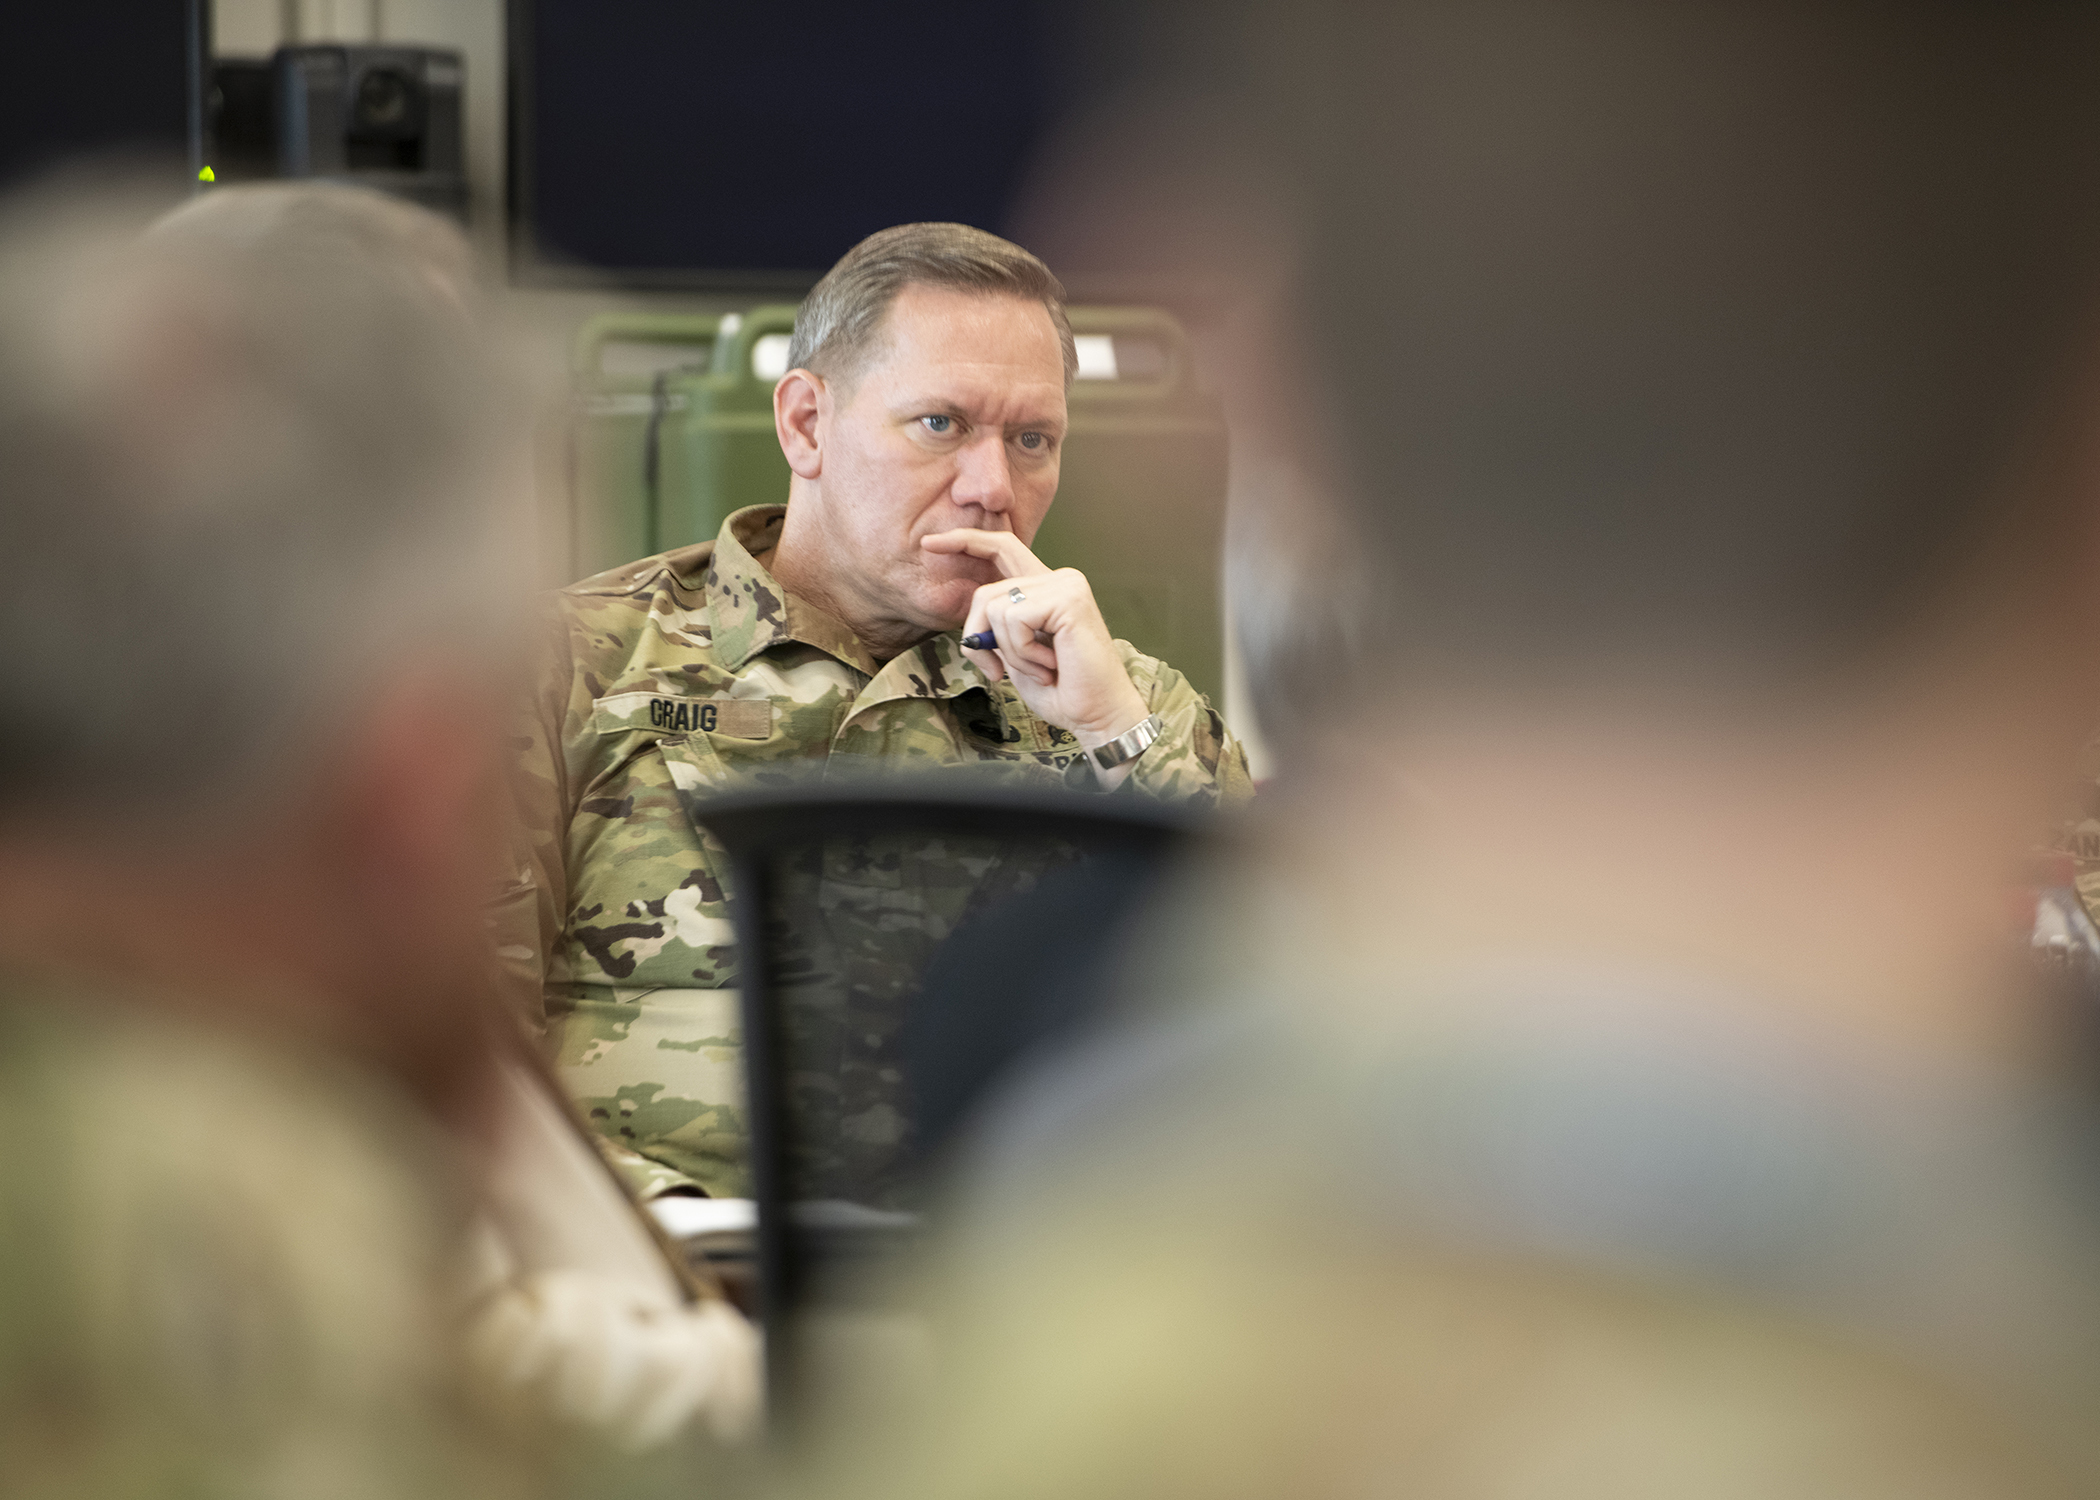 "U.S. Army Maj. Gen. James D. Craig, left, commanding general, Combined Joint Task Force-Horn of Africa (CJTF-HOA), listens to a briefing titled ""Triggers of Regional Instability"" during the East Africa Security Forum (EASF) at Camp Lemonnier, Djibouti, Dec. 11, 2018. The EASF is an annual opportunity for CJTF-HOA and interagency leaders to sync, assess and align efforts to develop synchronized courses of action that support common goals. (U.S. Air Force photo by Tech. Sgt. Shawn Nickel)"